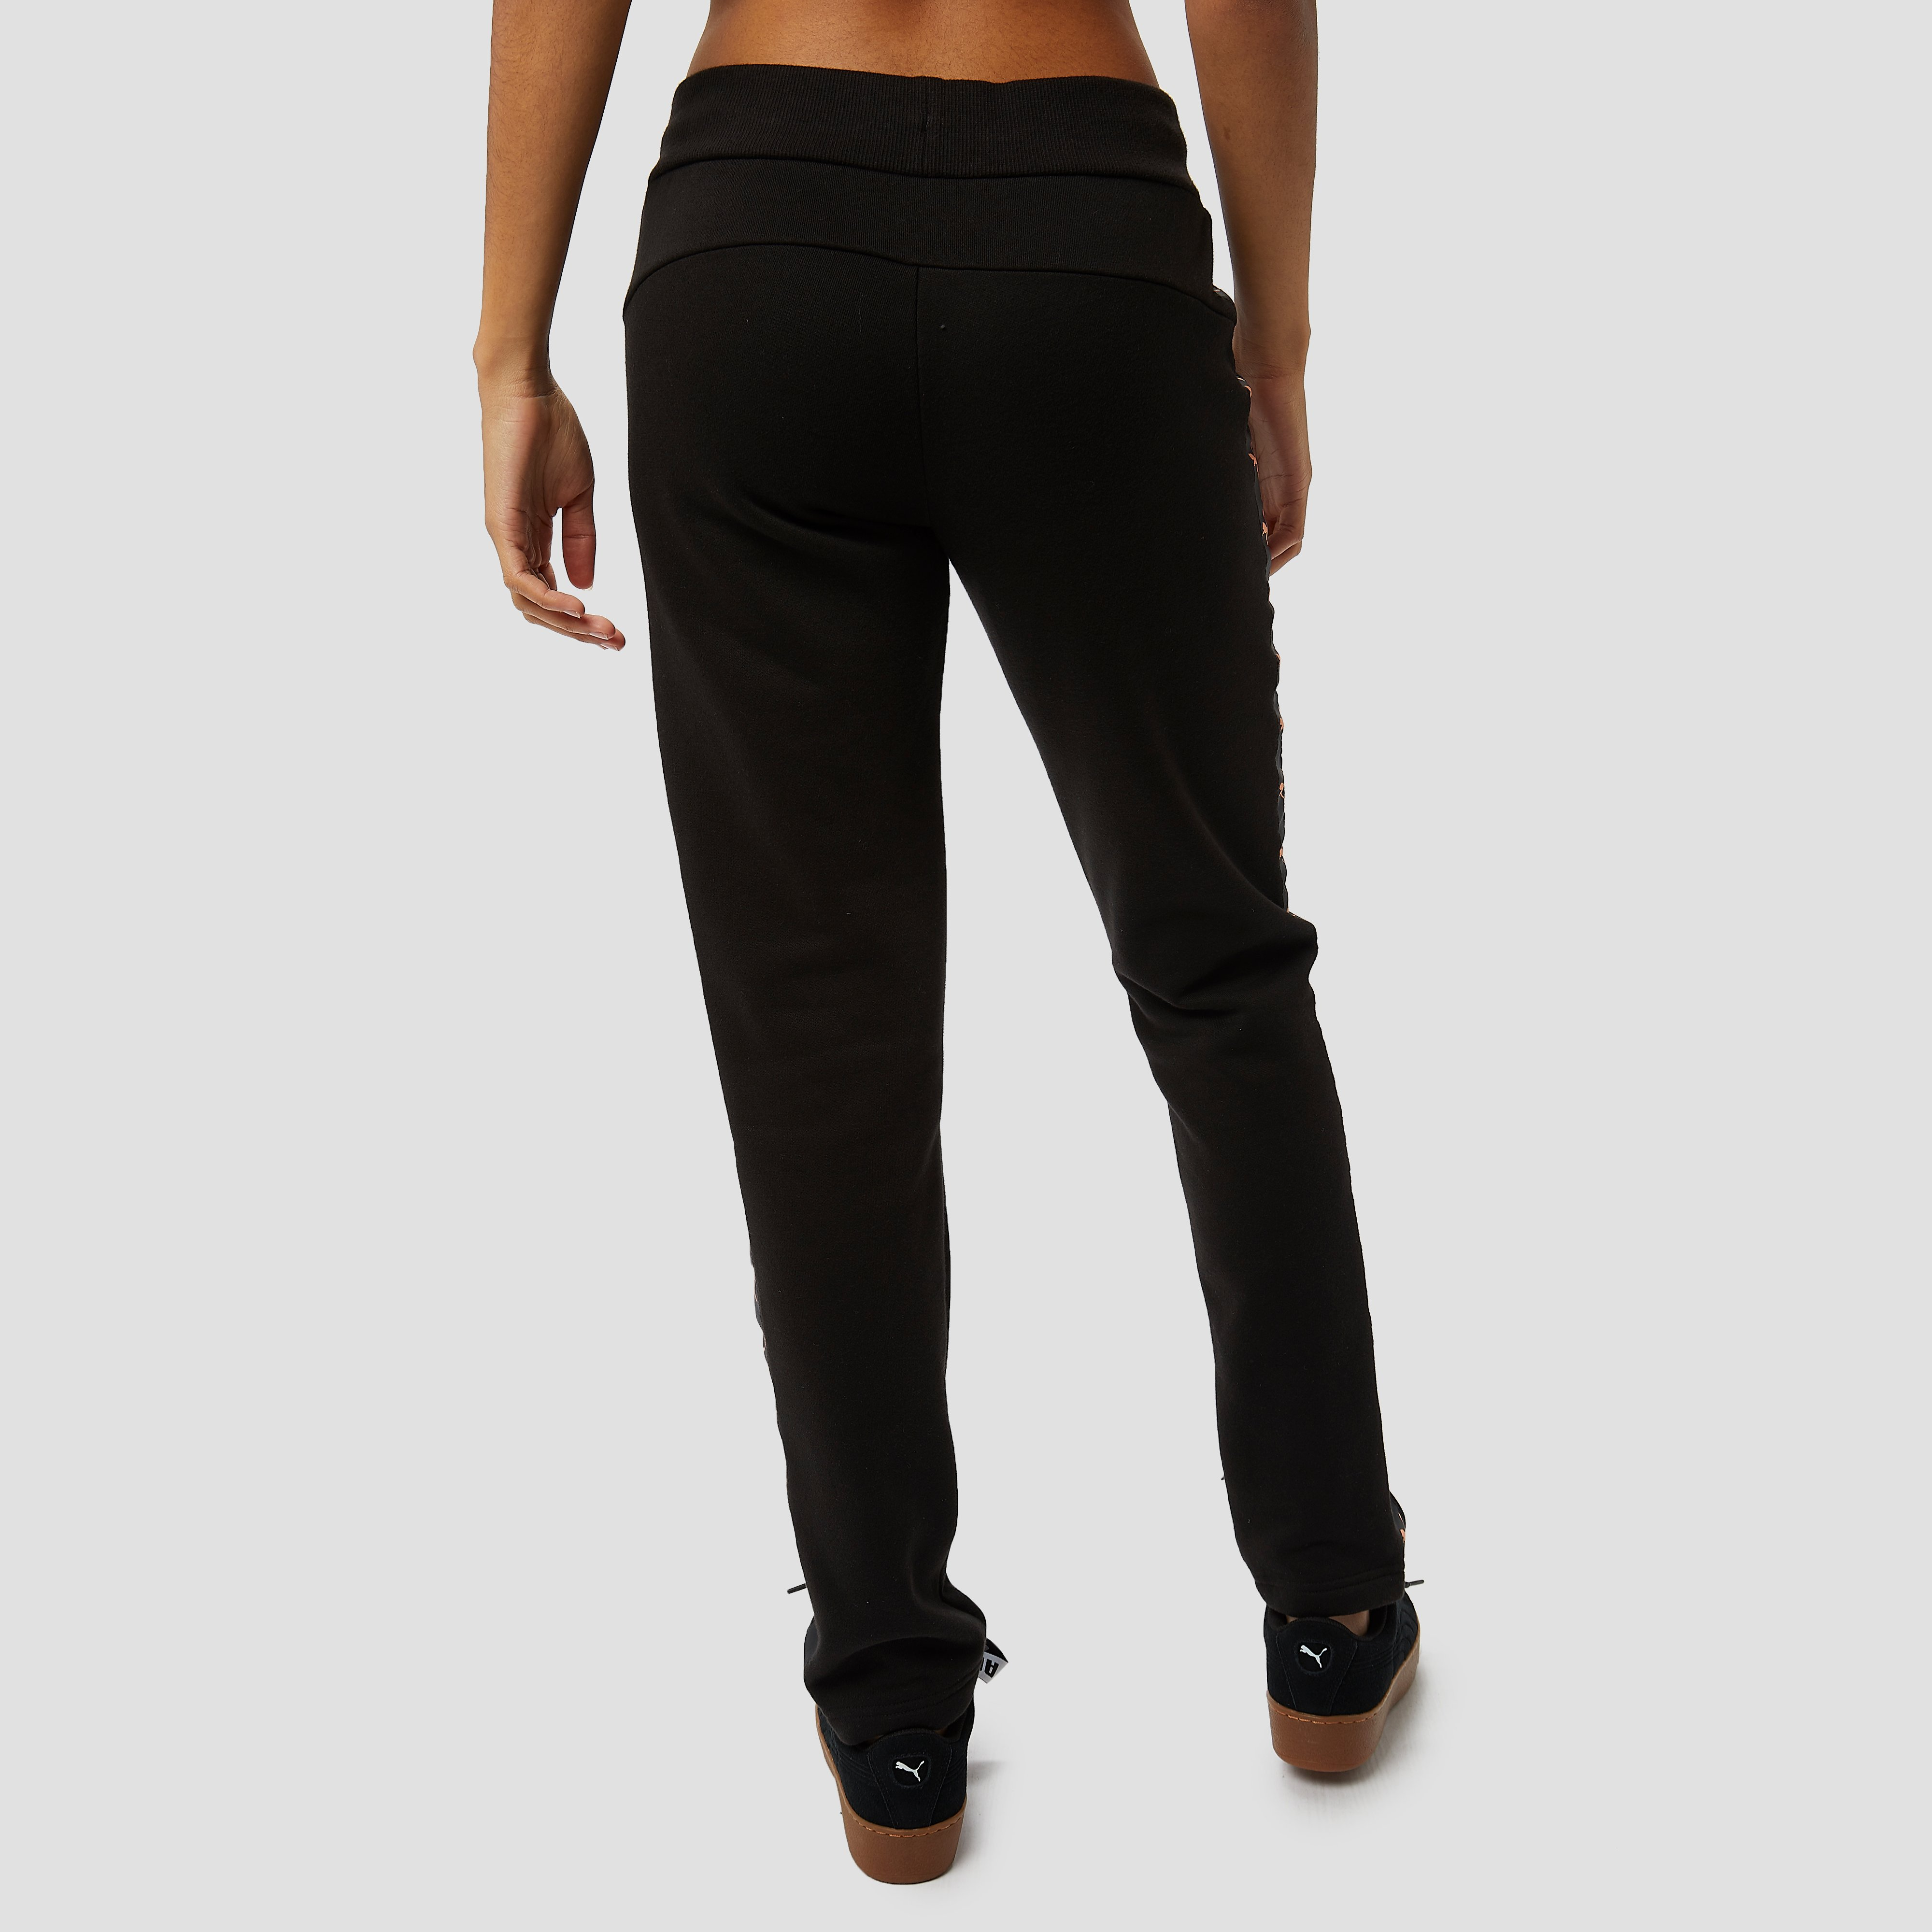 PUMA TAPED JOGGINGBROEK ZWART DAMES